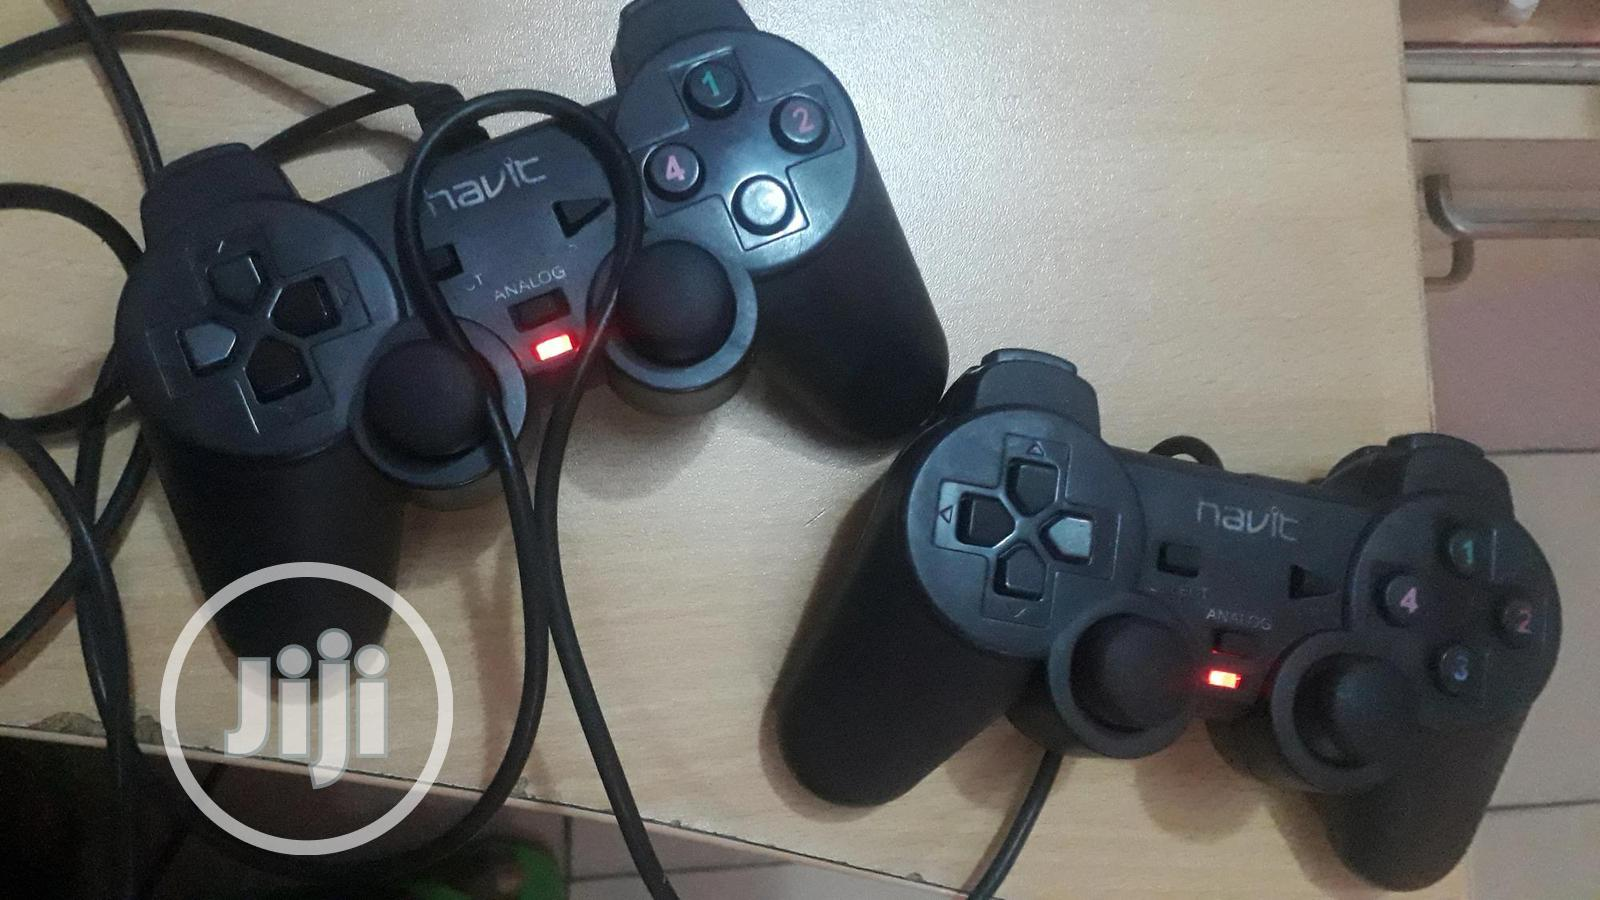 Archive: Havit USB Double Gamepad With Vibration for PC